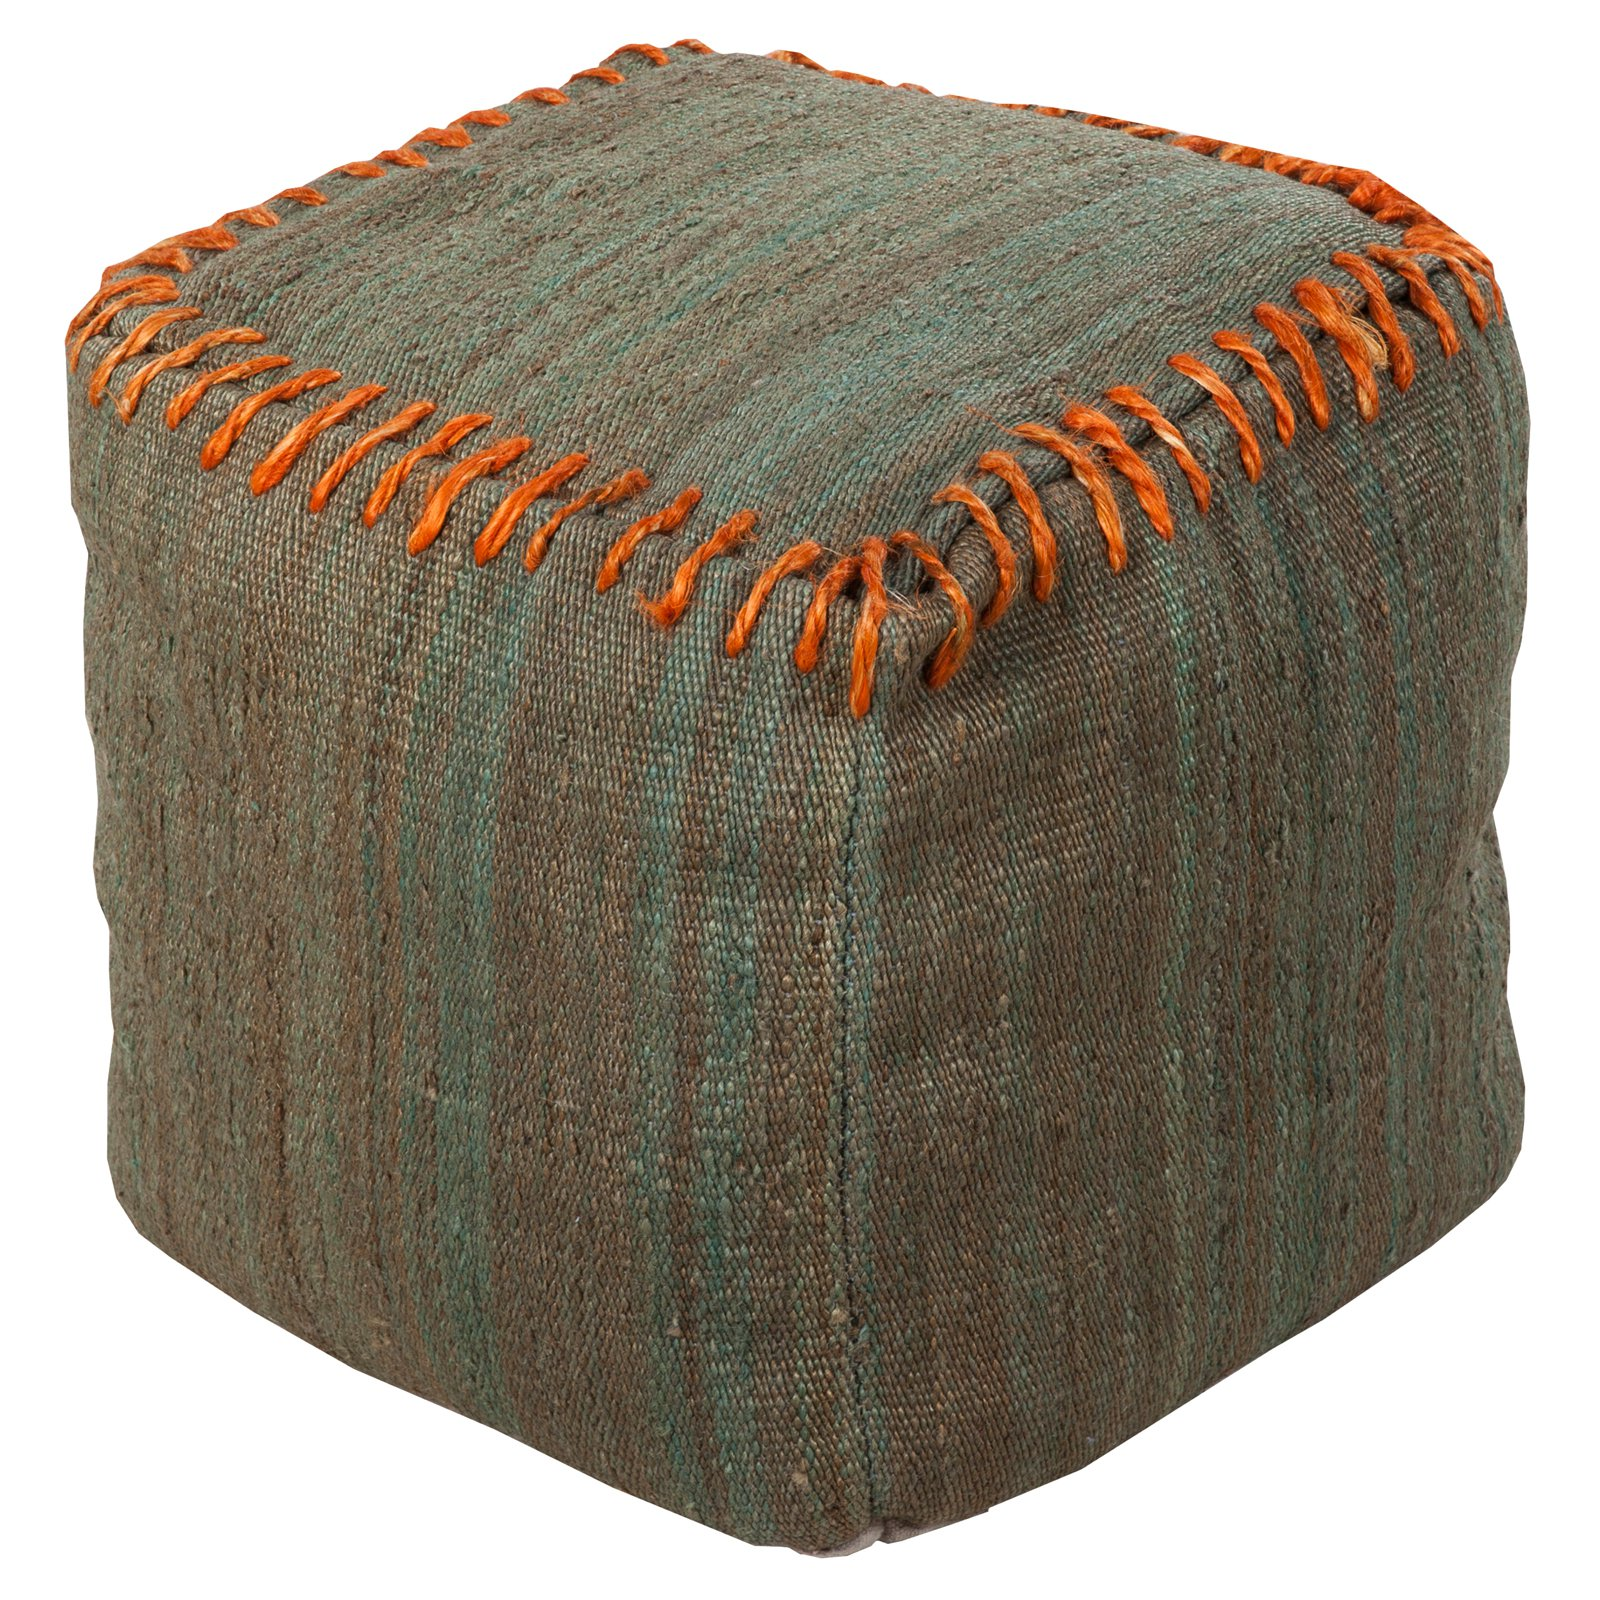 Surya 18 in. Cube Jute Pouf by Surya